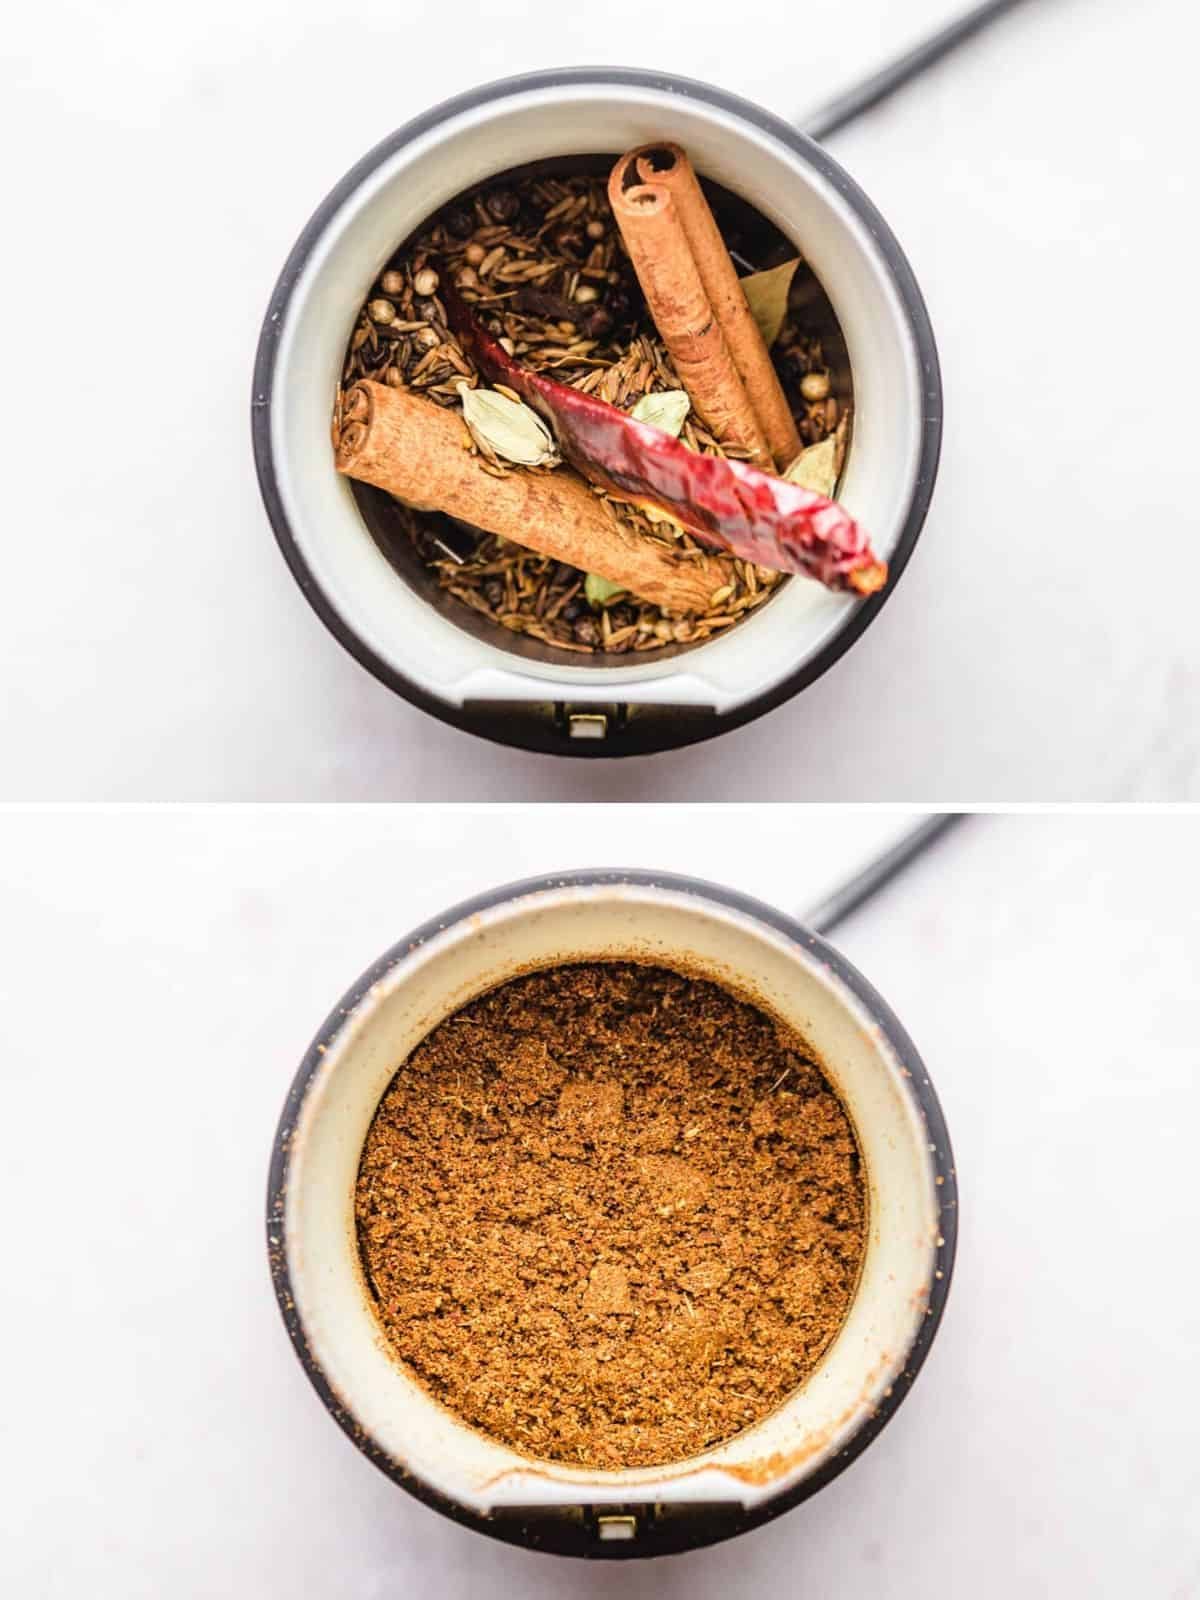 Grinding the whole spices in a small coffee grinder